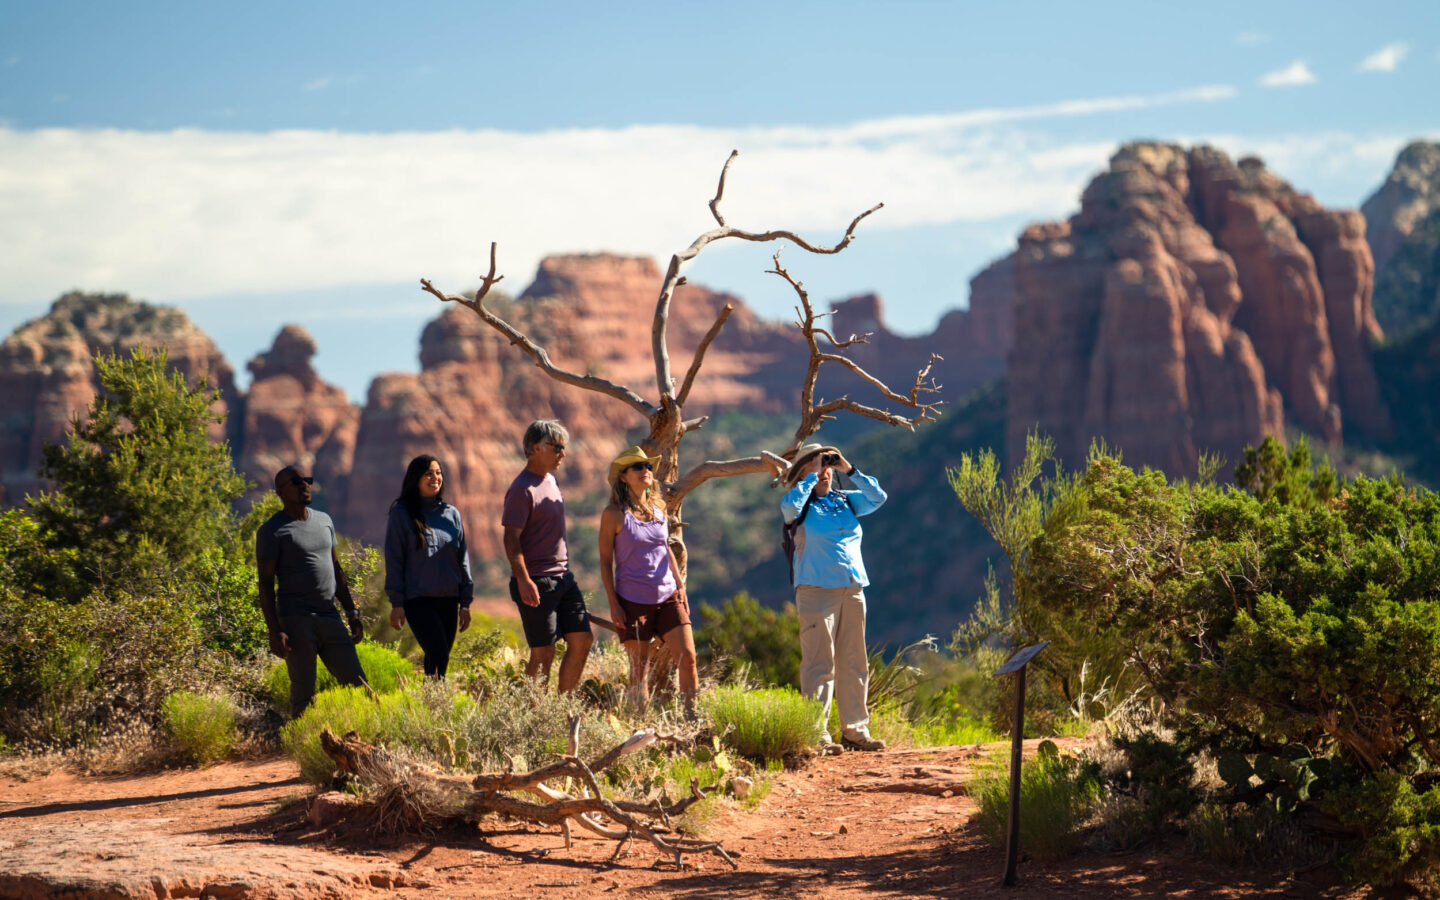 four people on a hike in a canyon with a tour guide